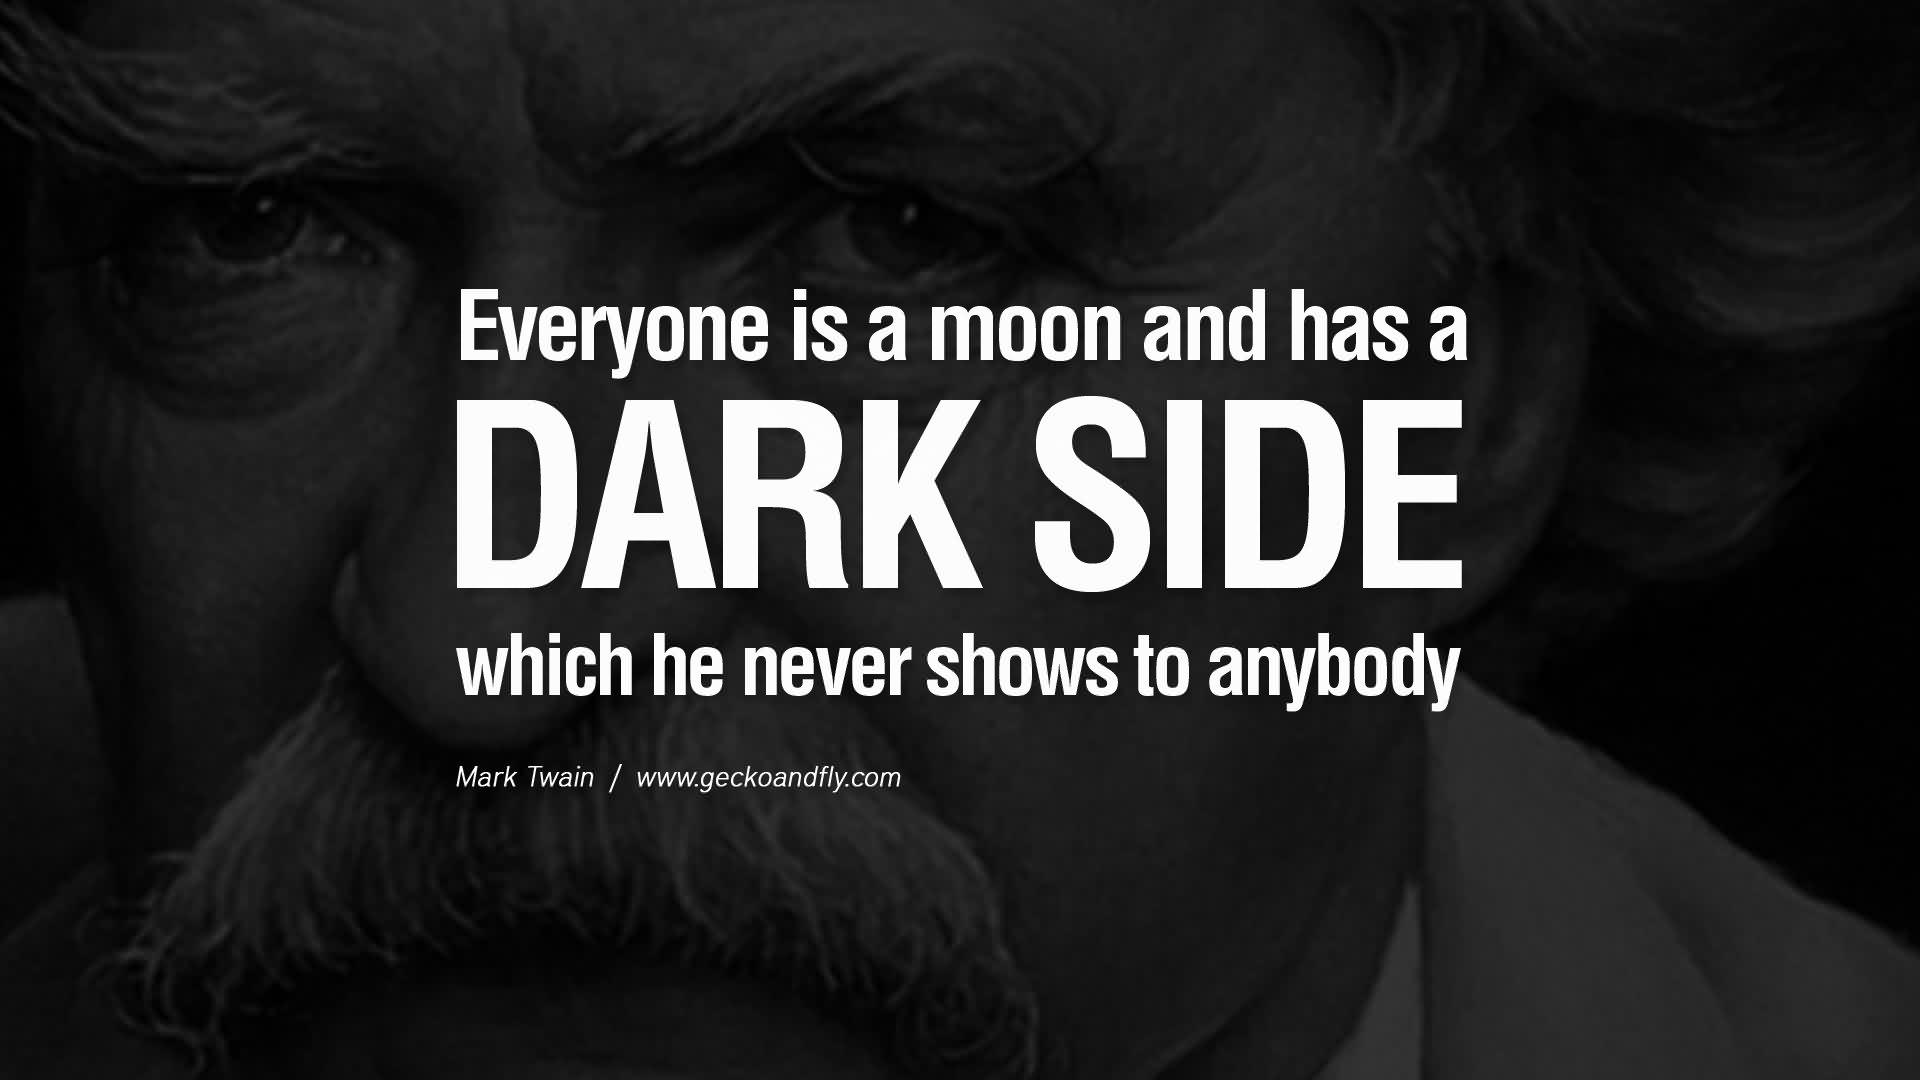 Superb Wise Quotes